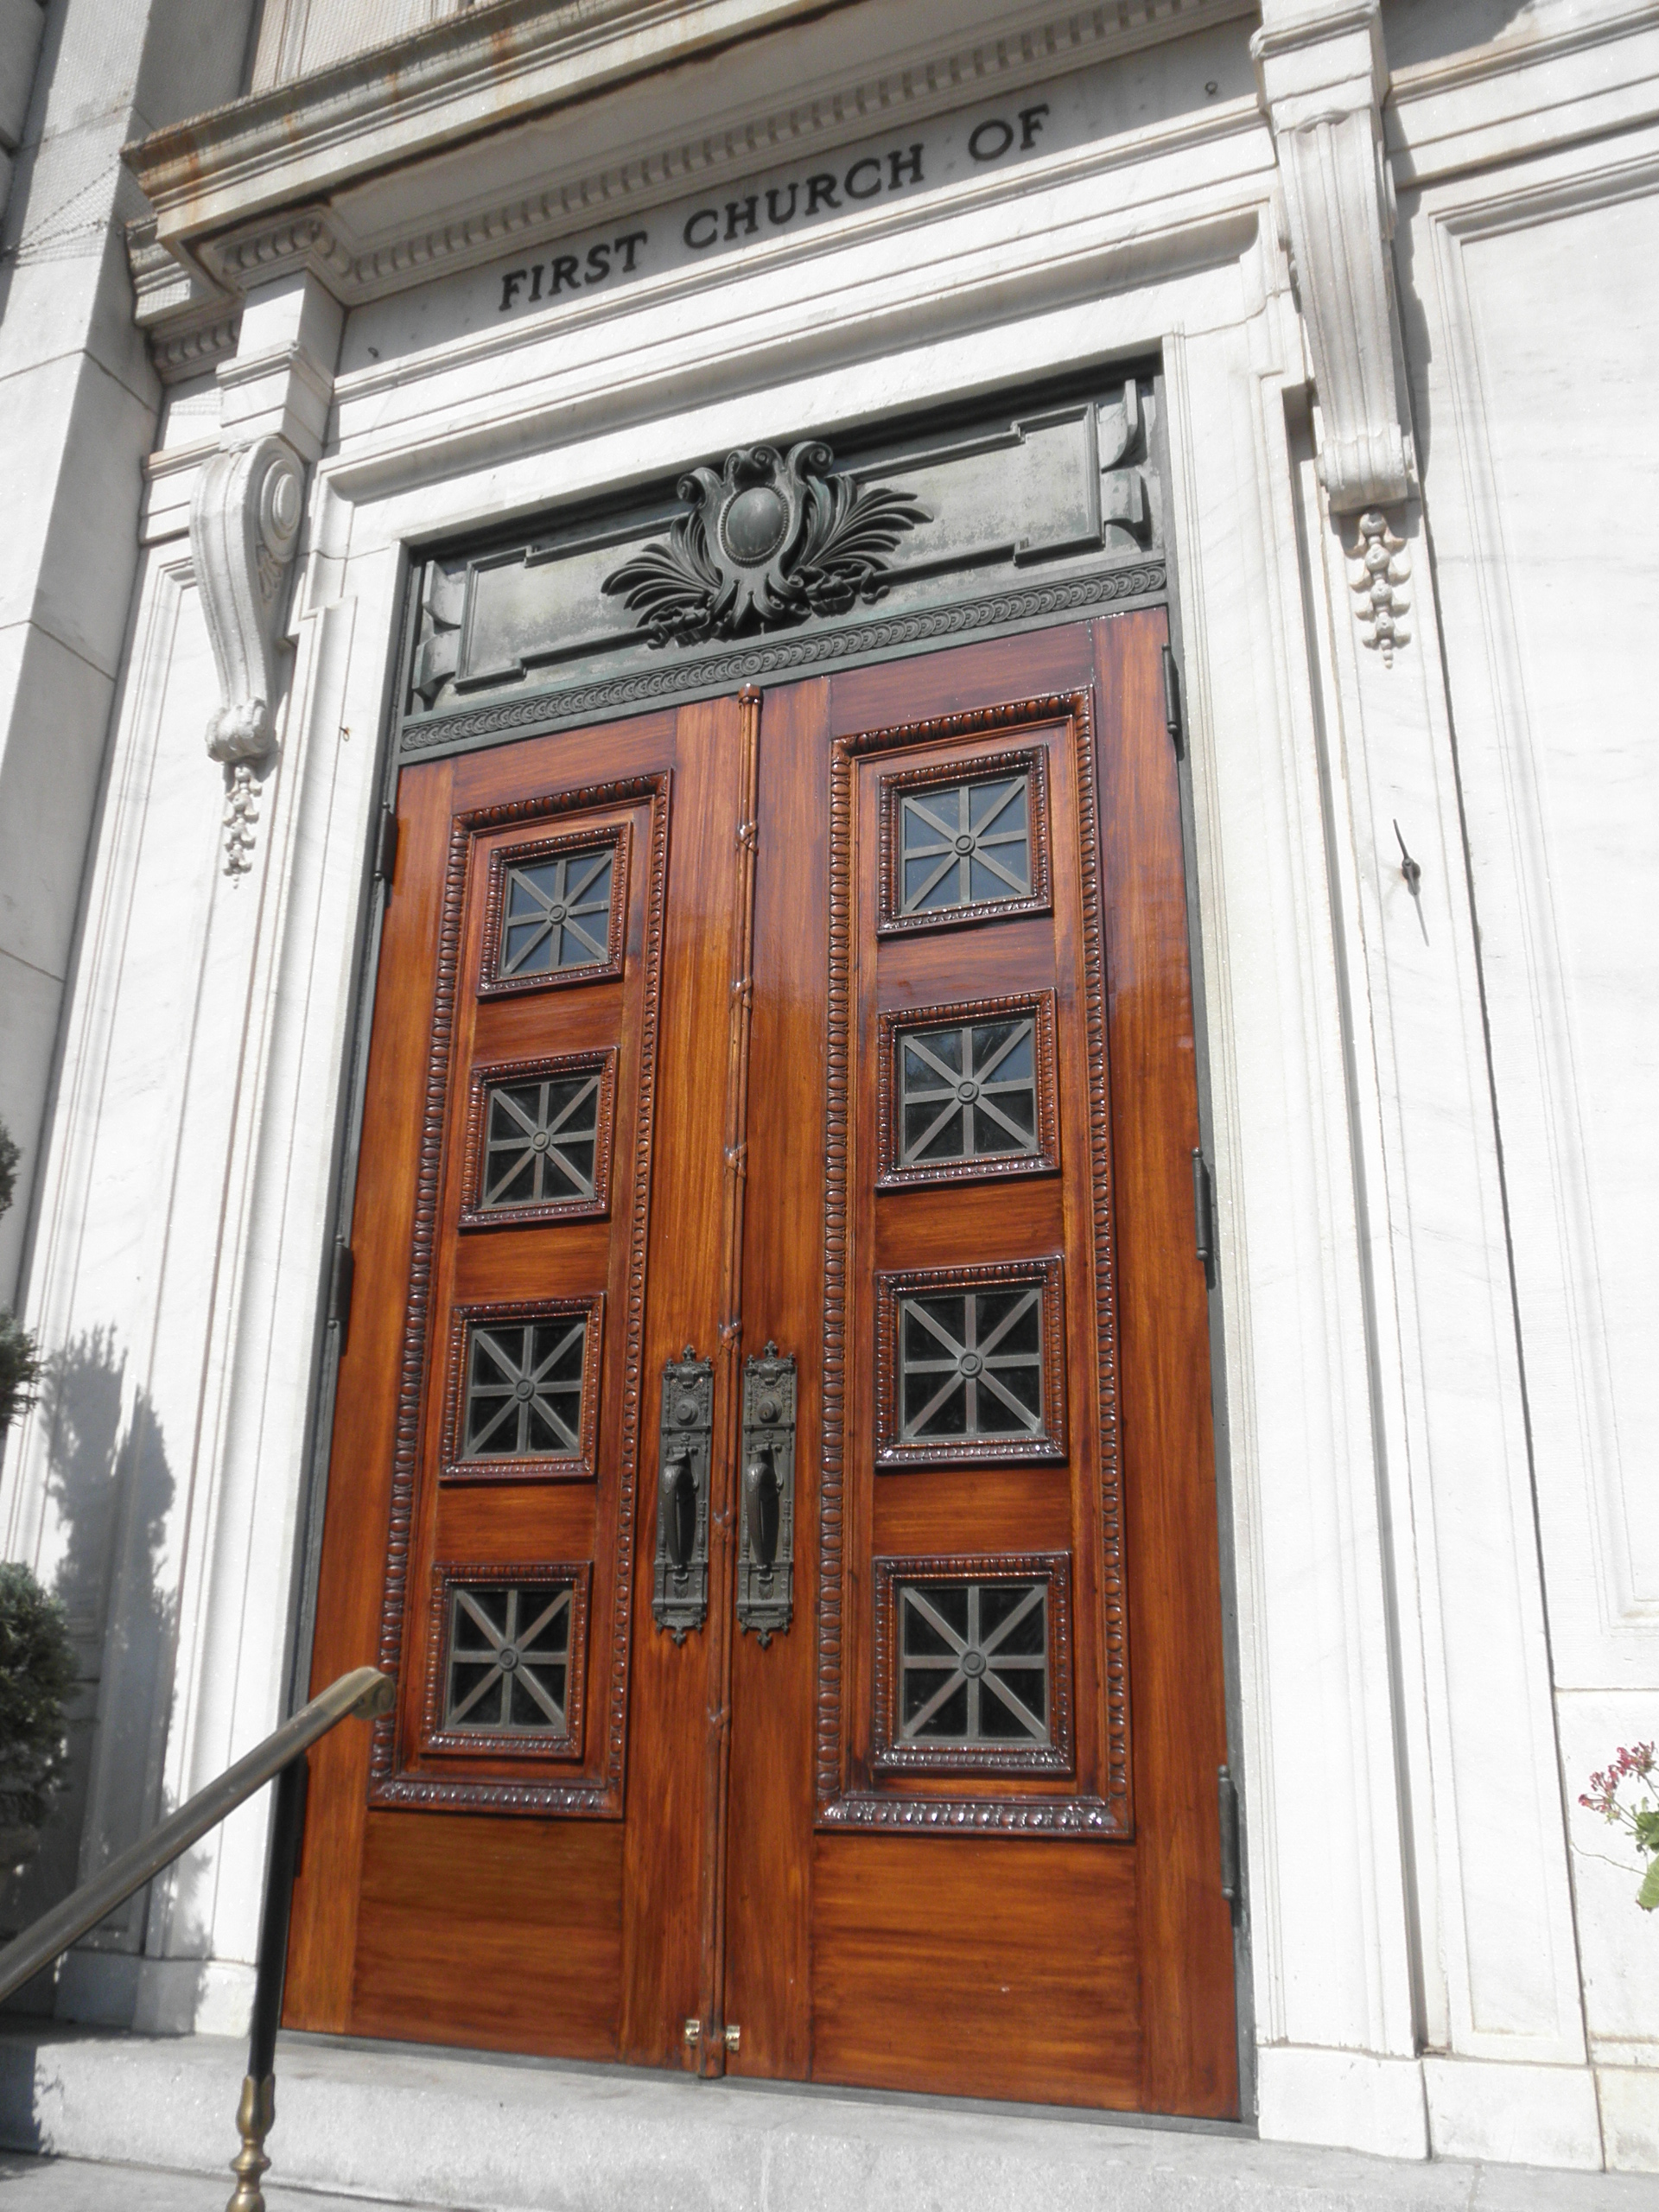 Original chestnut & walnut doors had been abused by previous restorations